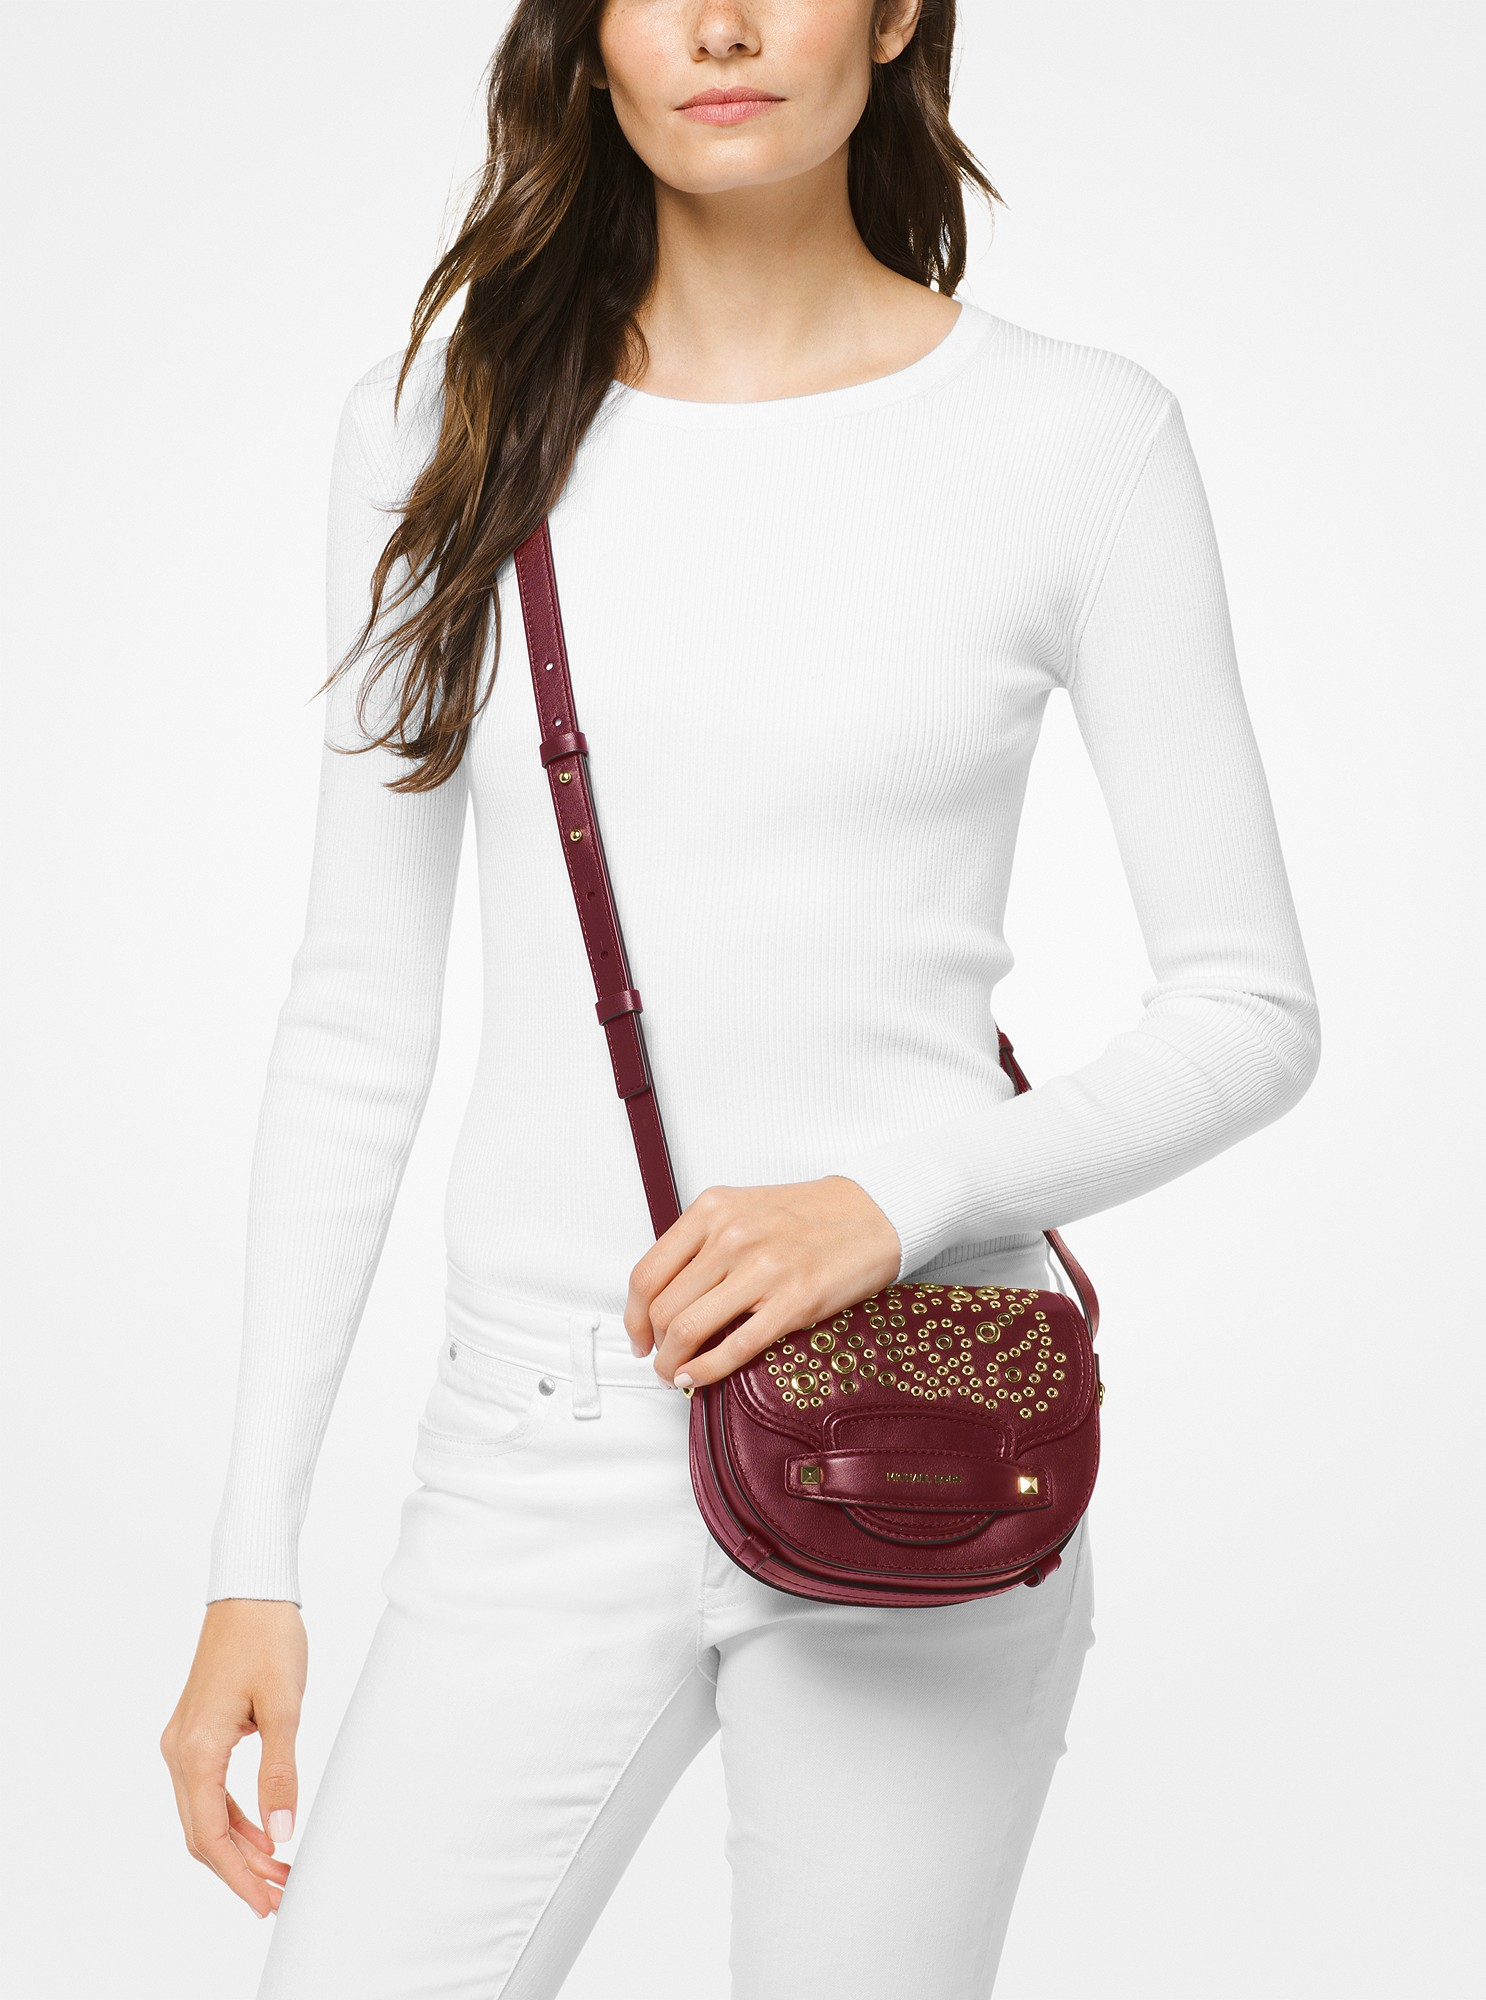 9c6c2a956237 Michael Kors Cary Small Grommeted Leather Saddle Bag - Oxblood ...